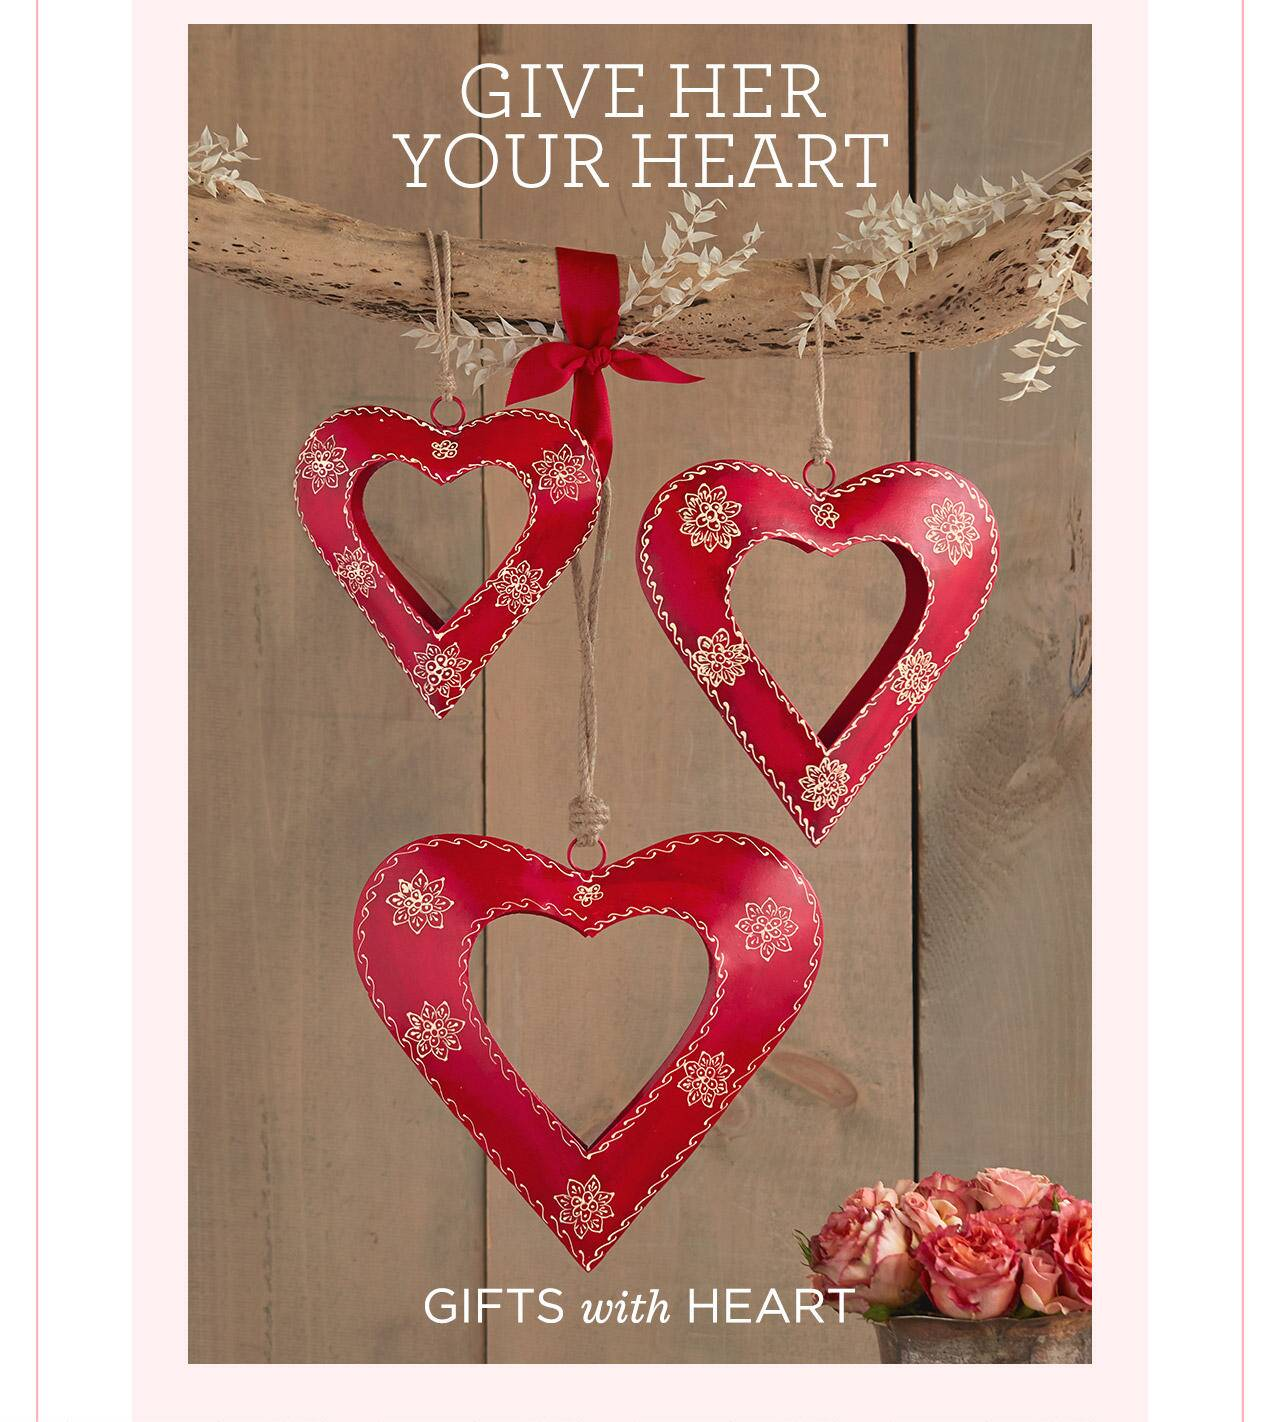 Gifts with Heart